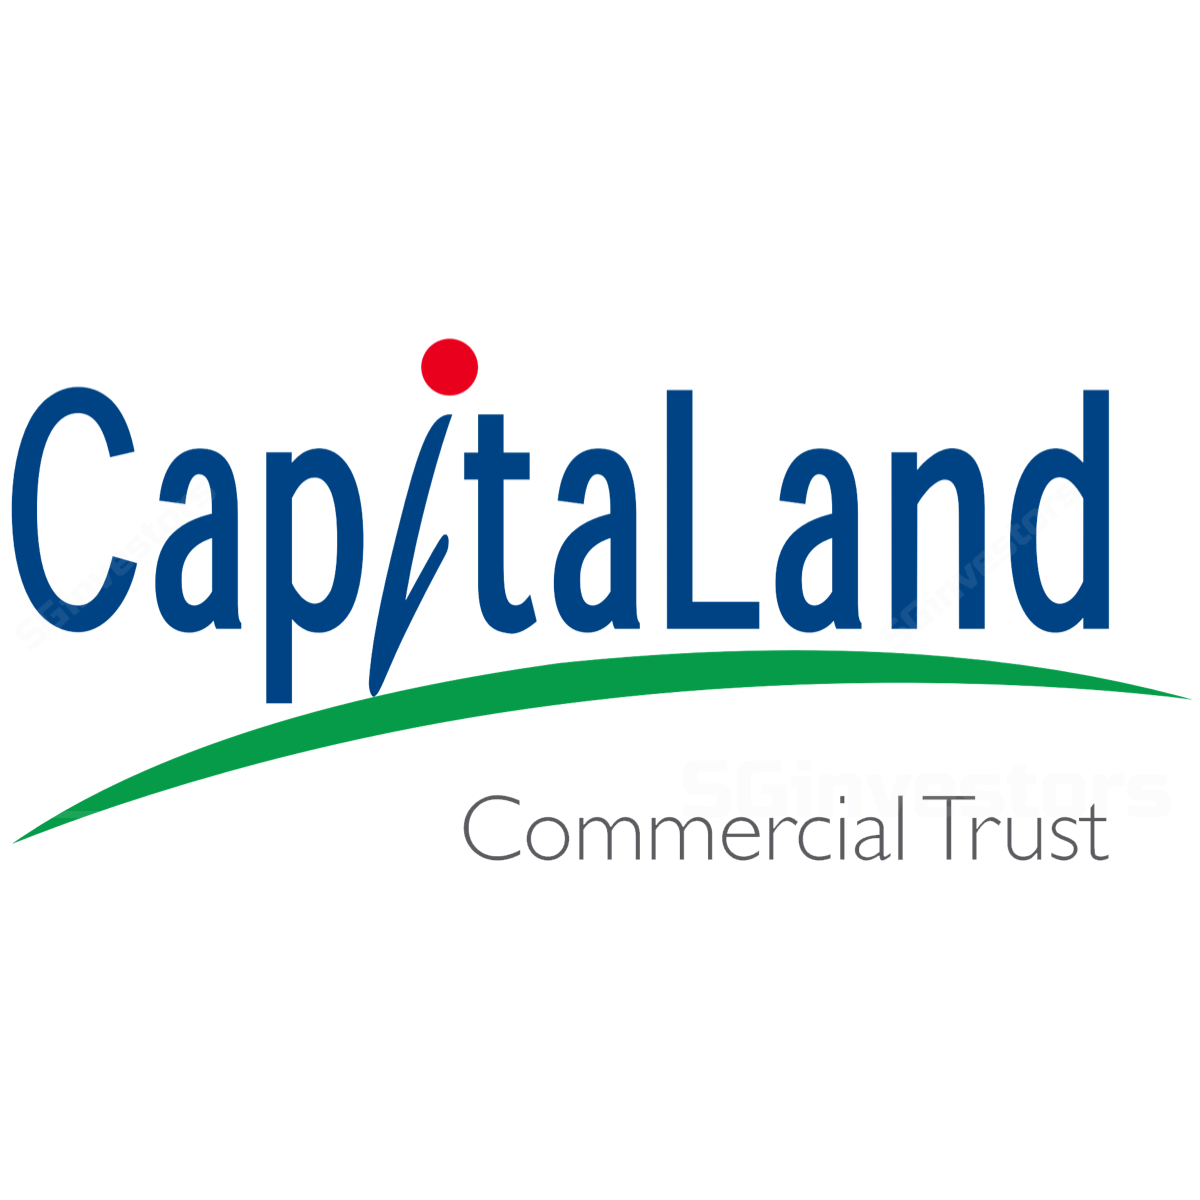 CapitaLand Commercial Trust (CCT SP) - Maybank Kim Eng 2017-12-15: Positives Priced-In